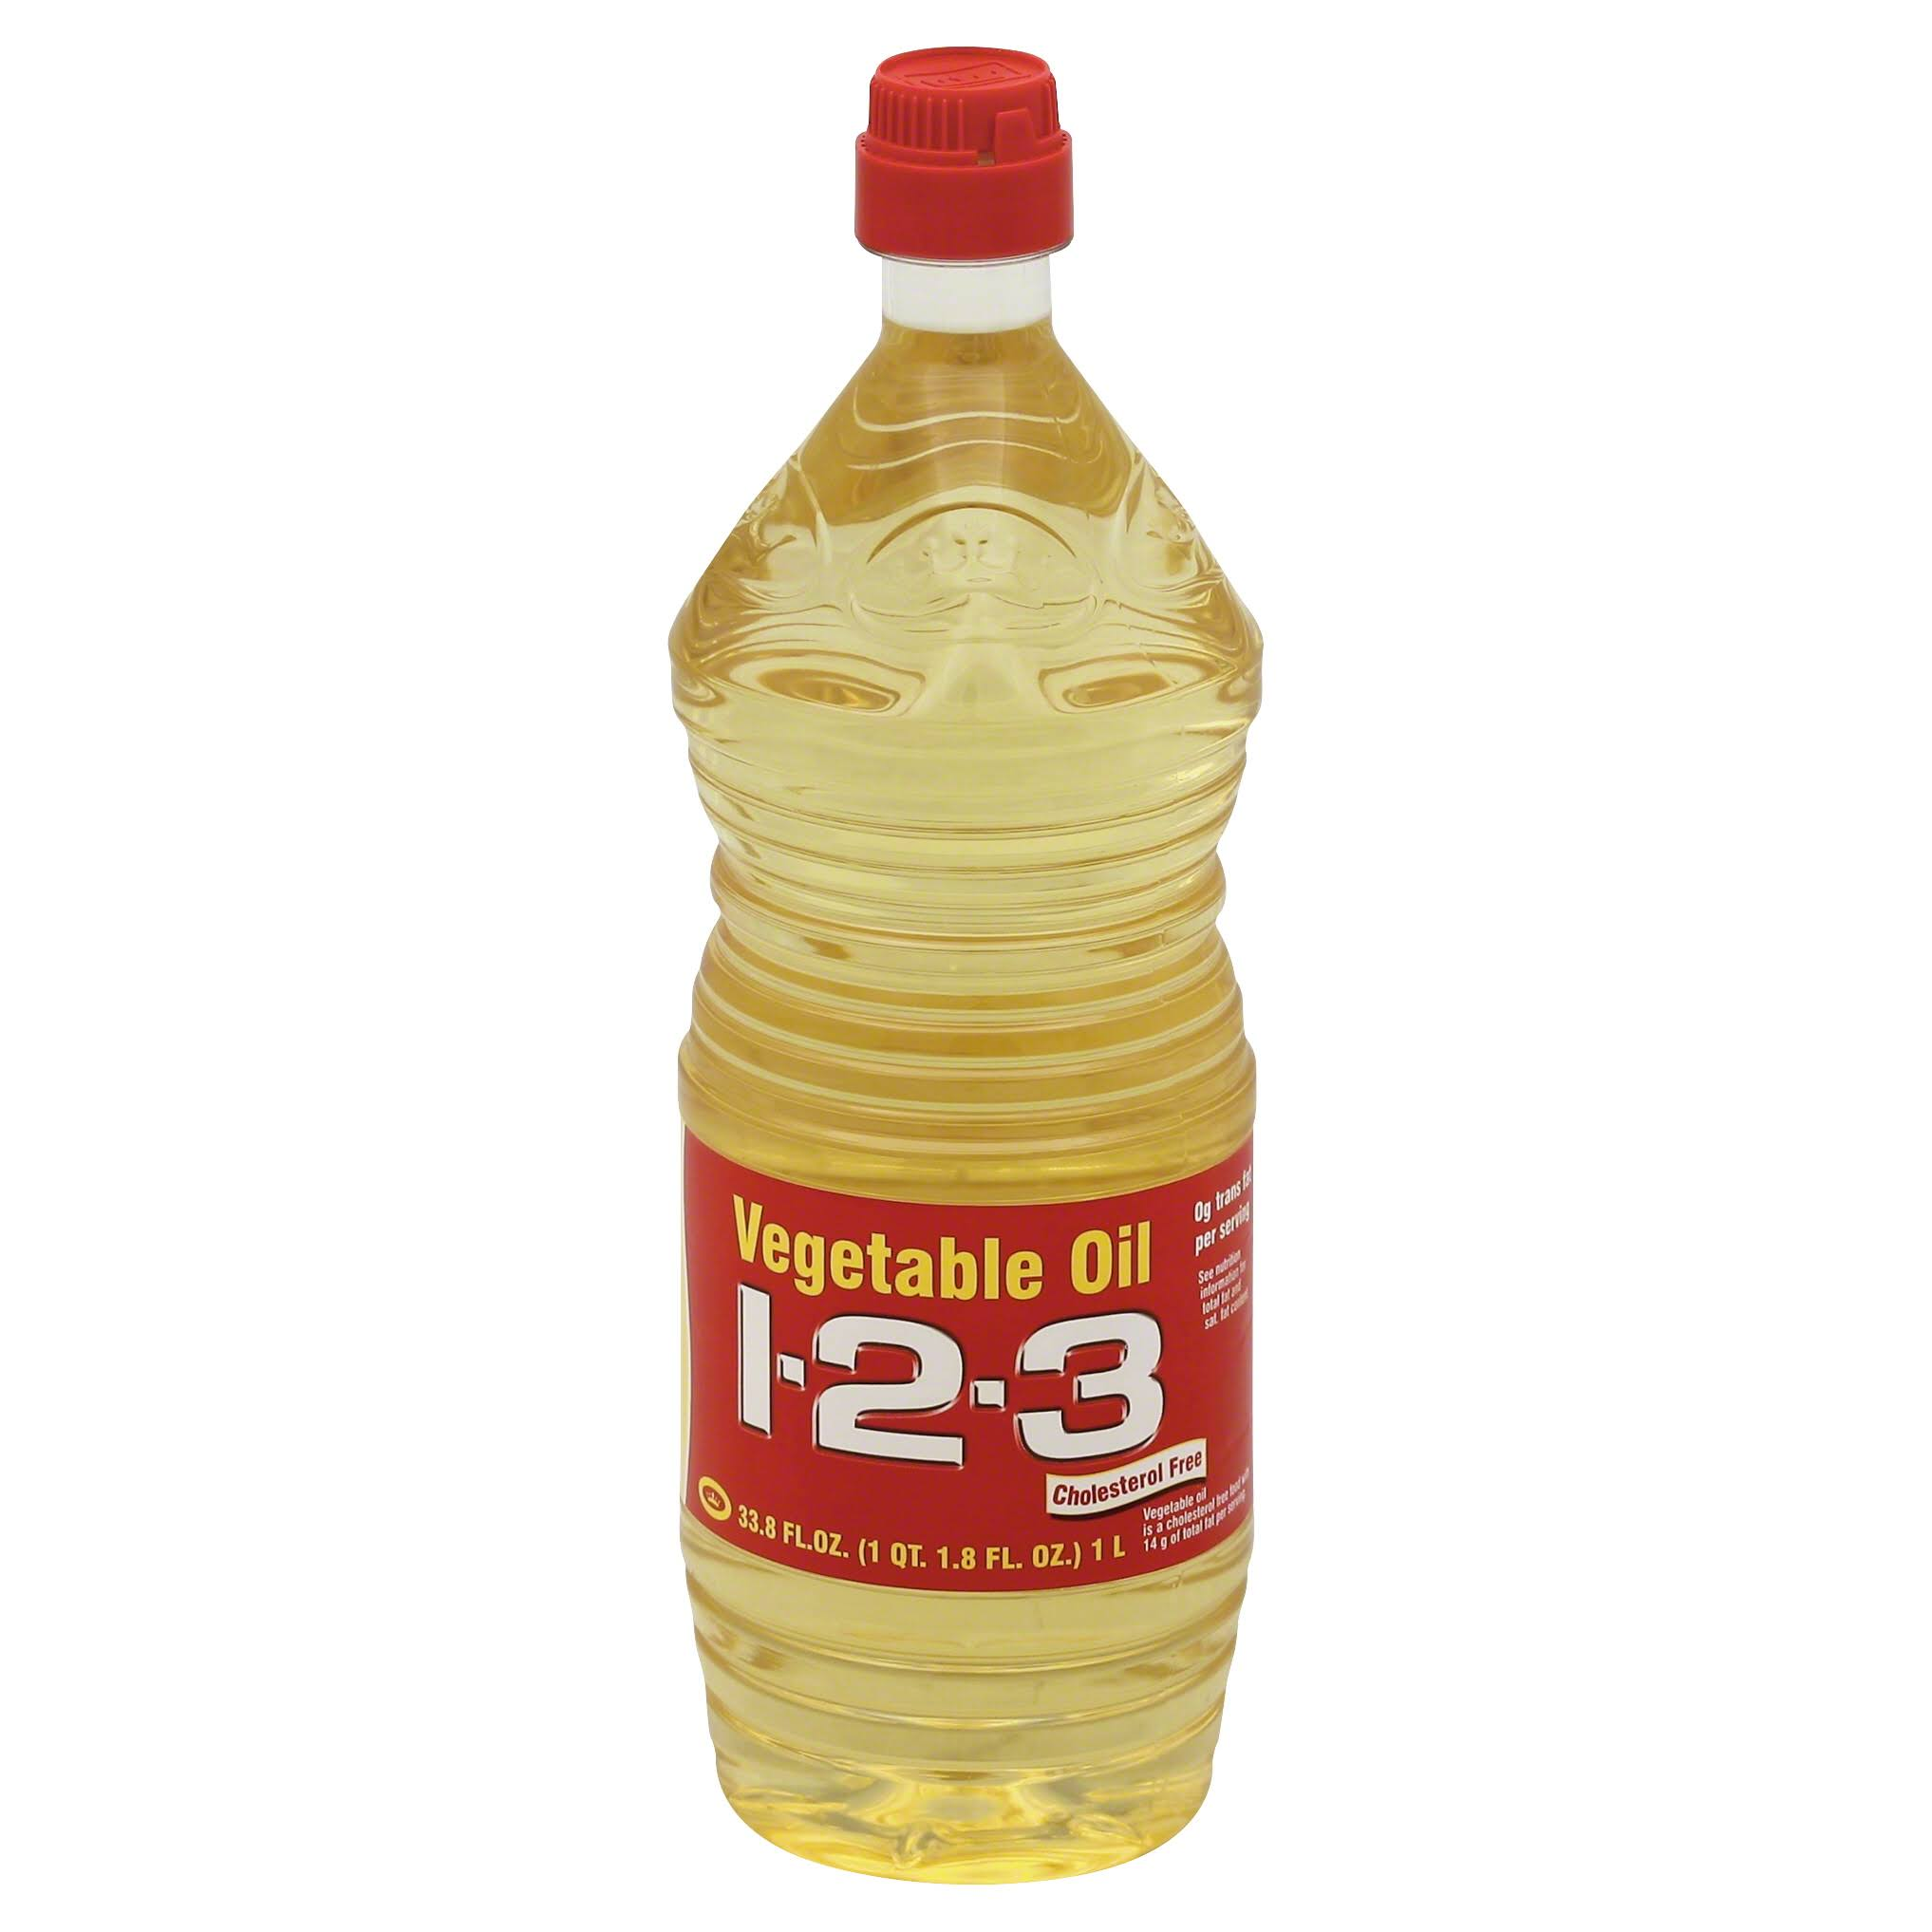 1 2 3 Vegetable Oil - 33.8oz